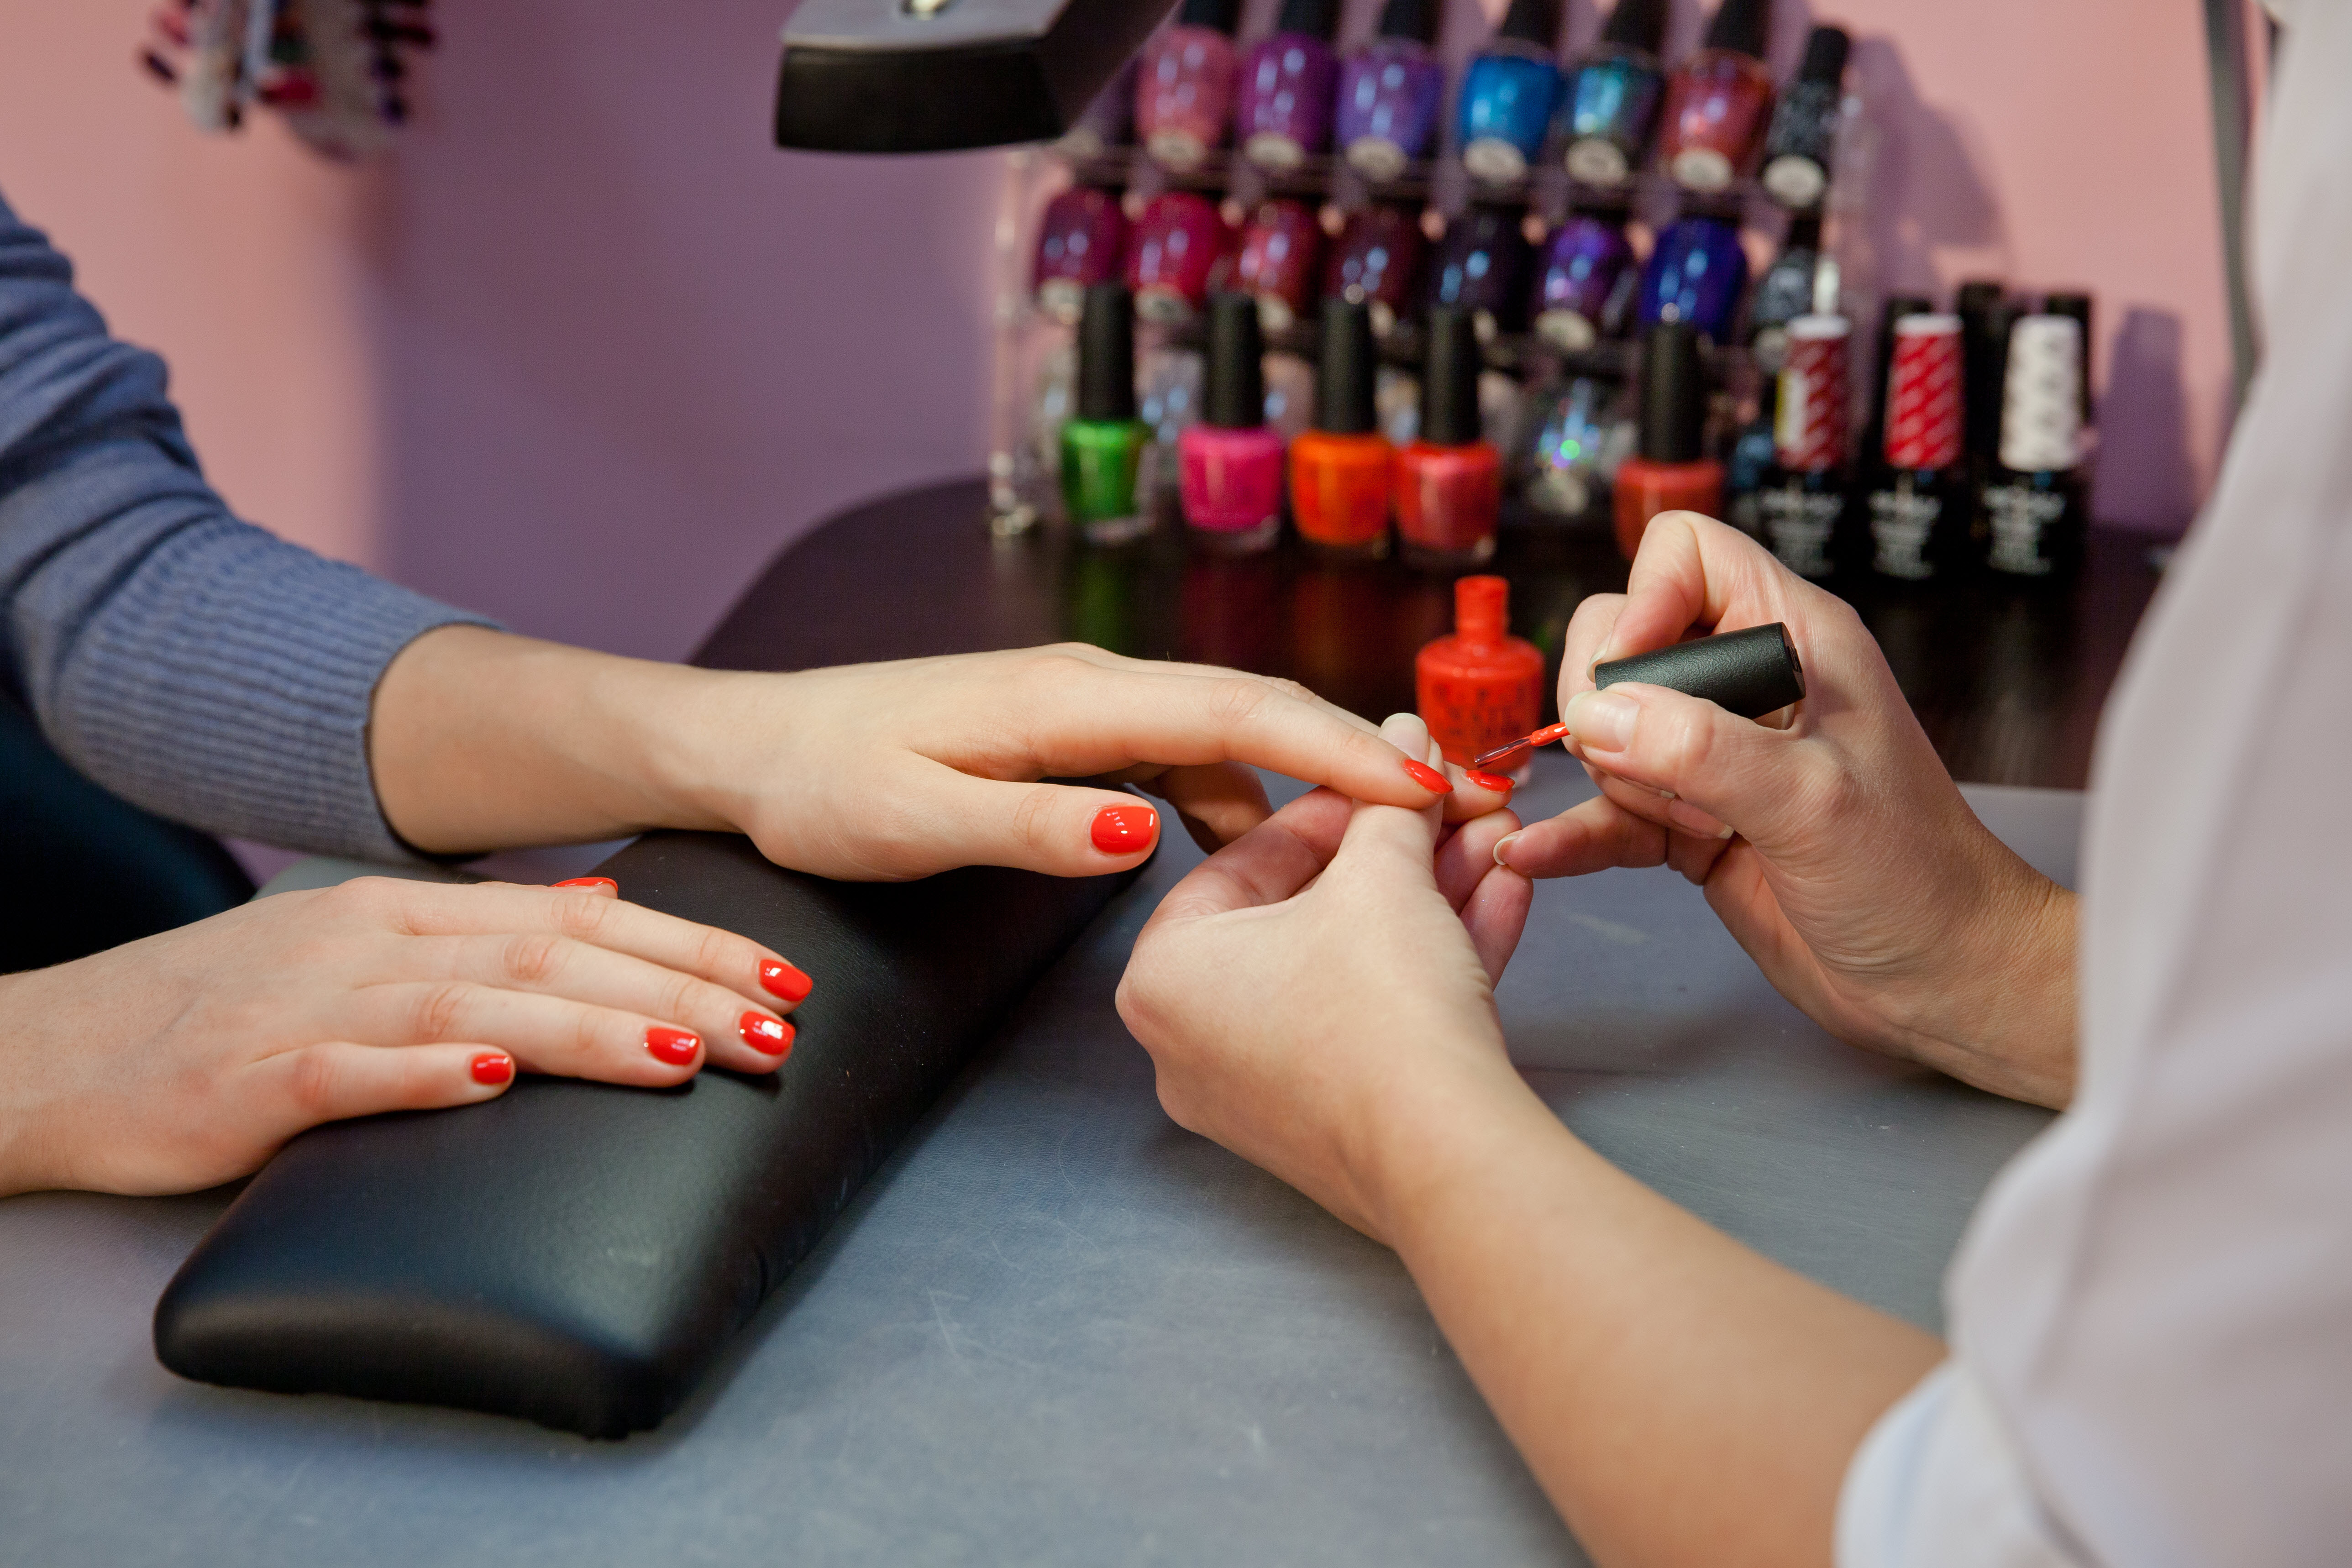 Ventilation Requirements For Nail Salons : Safety and hygiene solutions for nail salon workers